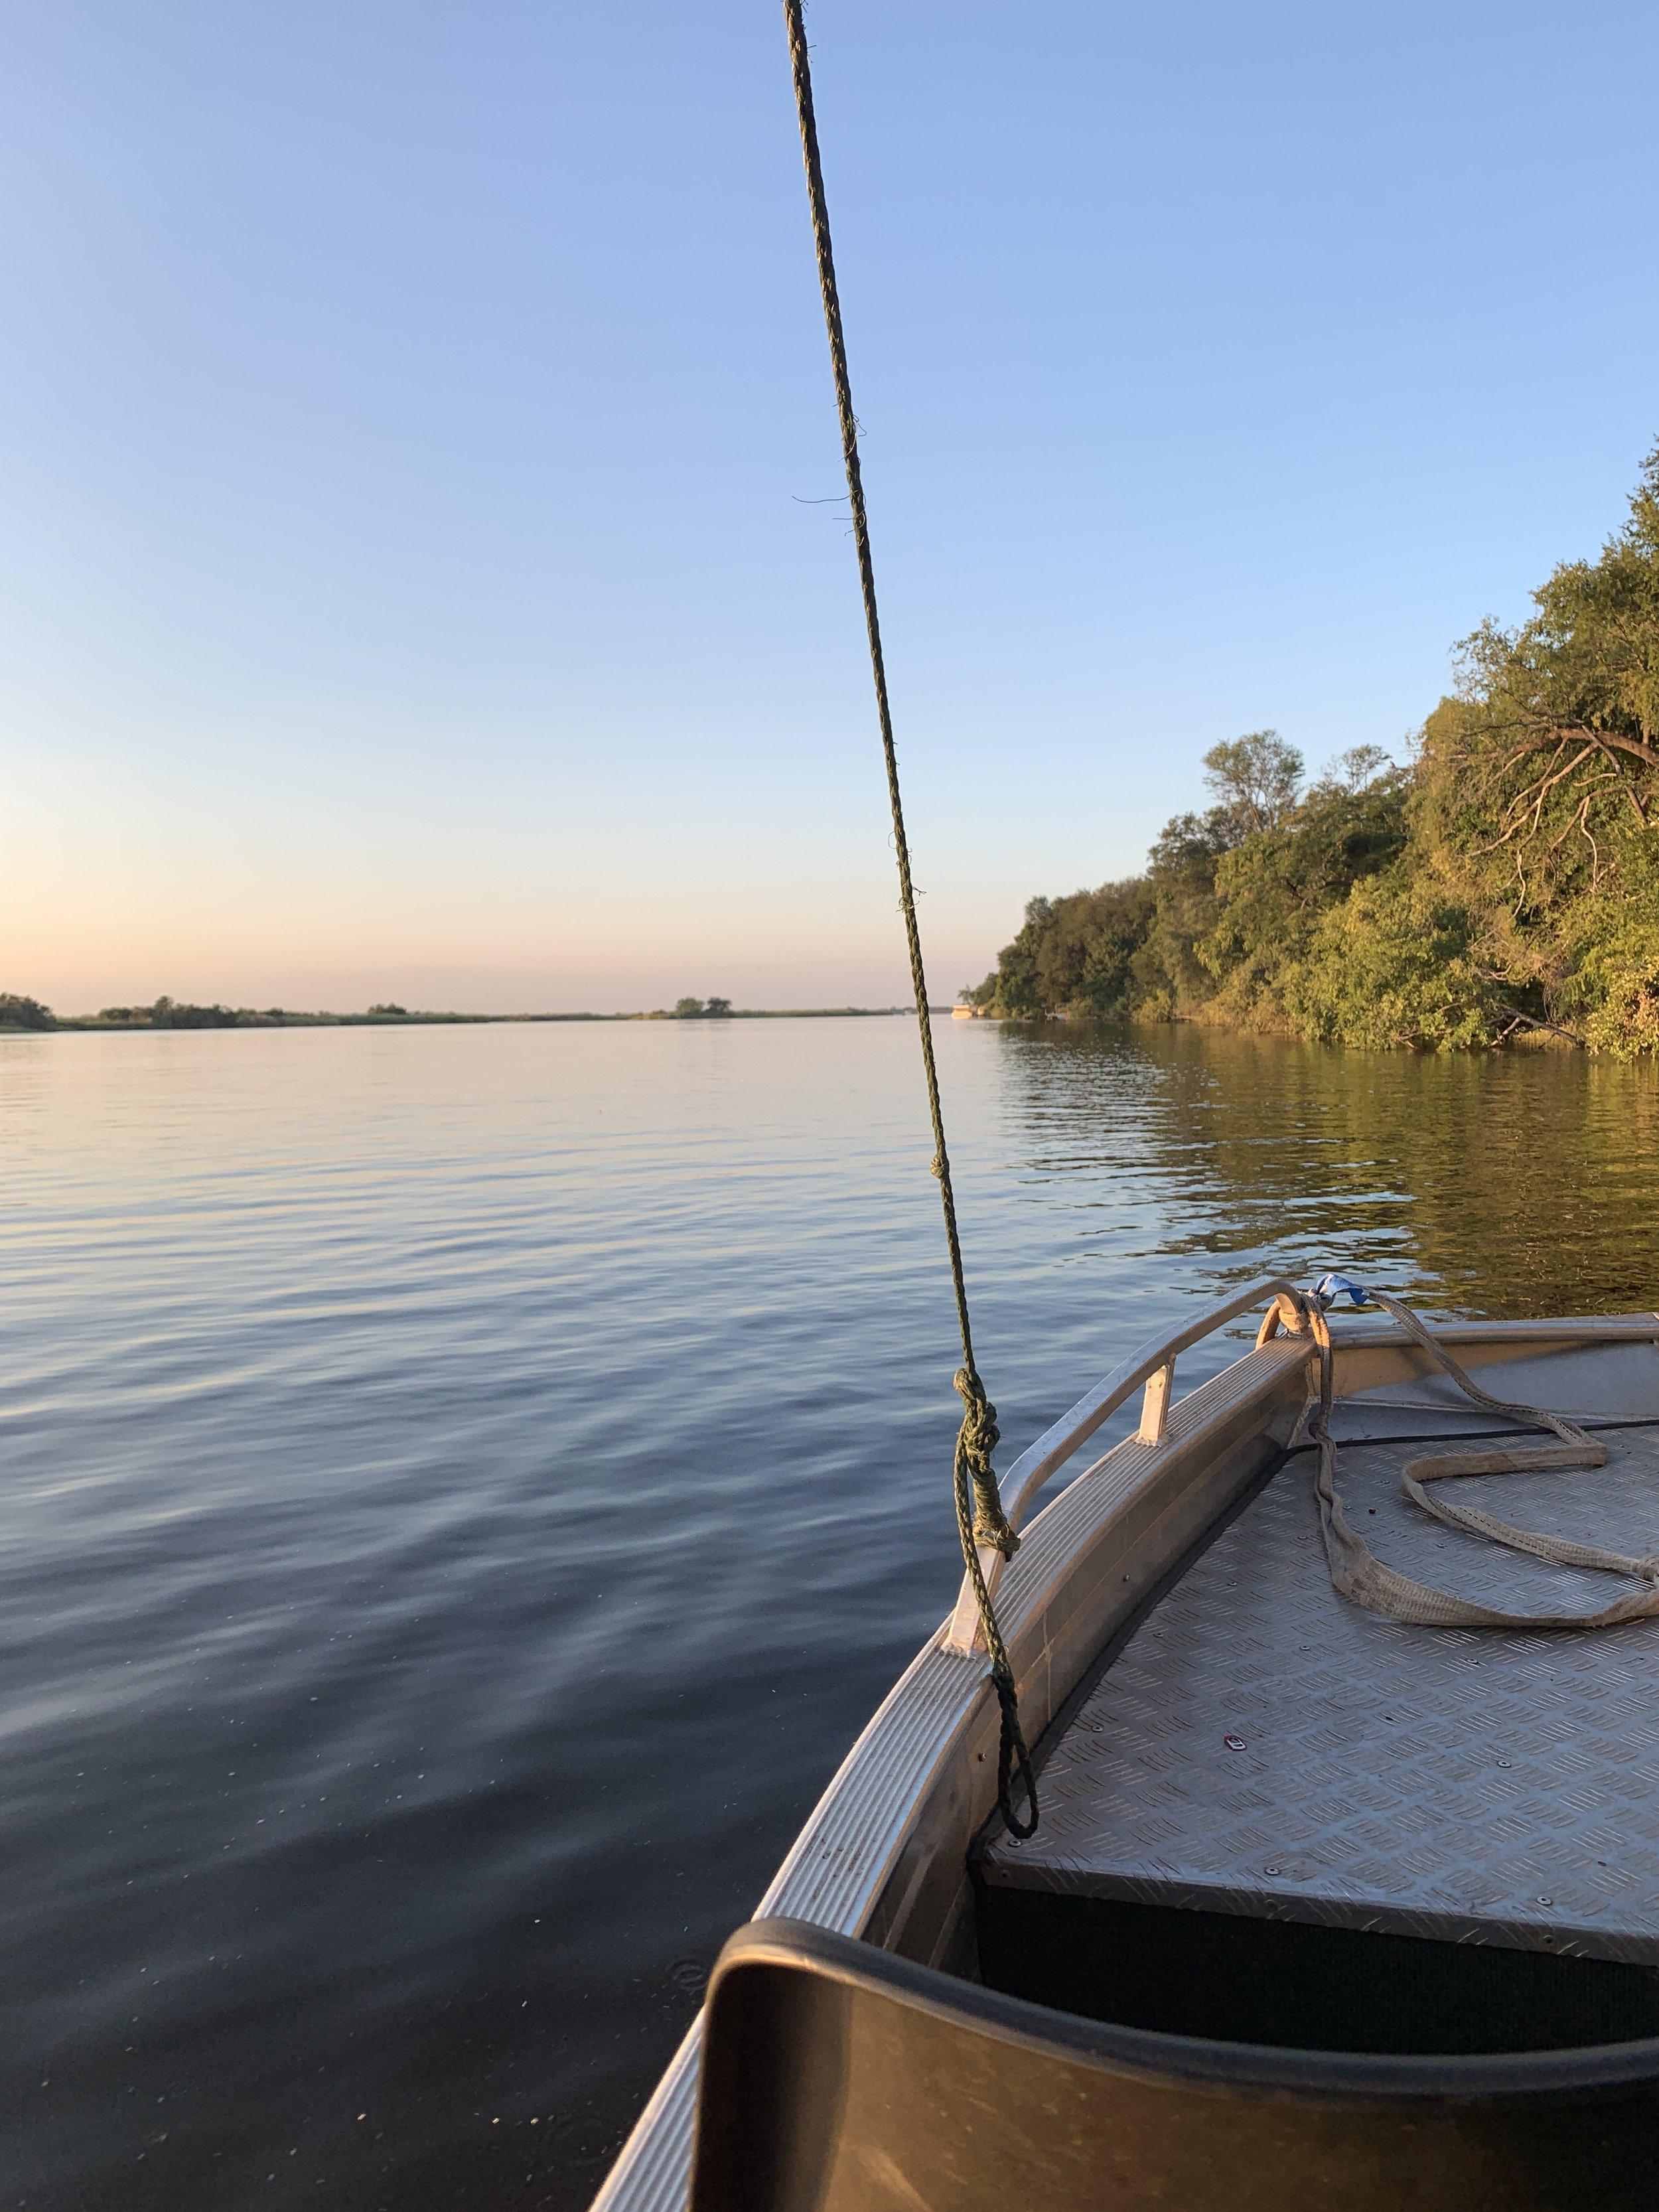 Located right on the Chobe River, you can pay for one of the lodge's boat tours to have a different perspective of hippos, crocodiles, elephants and more from the water.  While Fiona went on that tour, I happen to meet some cool people that invited me out to an island party! Saw hippos on the way.